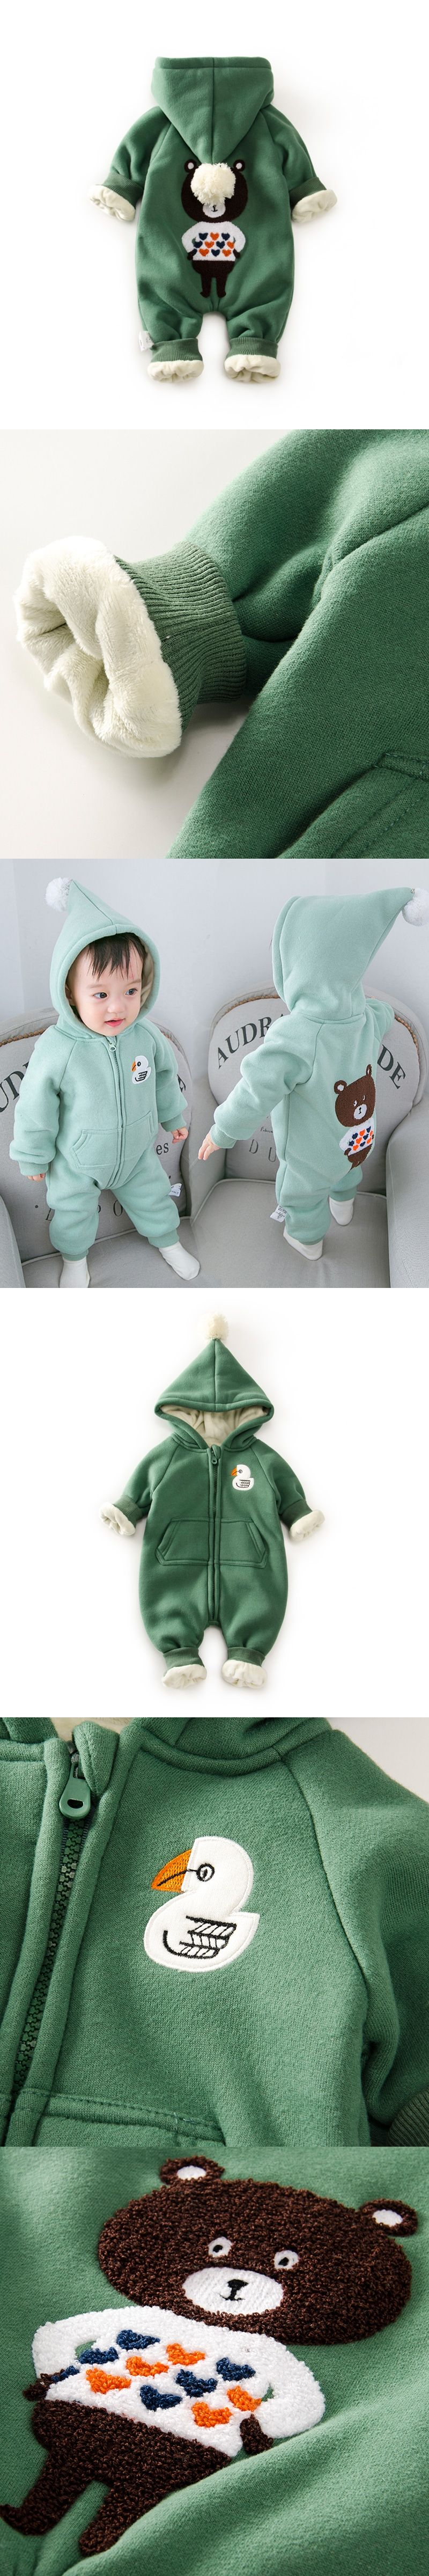 eac604dc0 10 Degree Winter Warm Fleece Baby Romper Hooded Newborn Clothes Bear ...